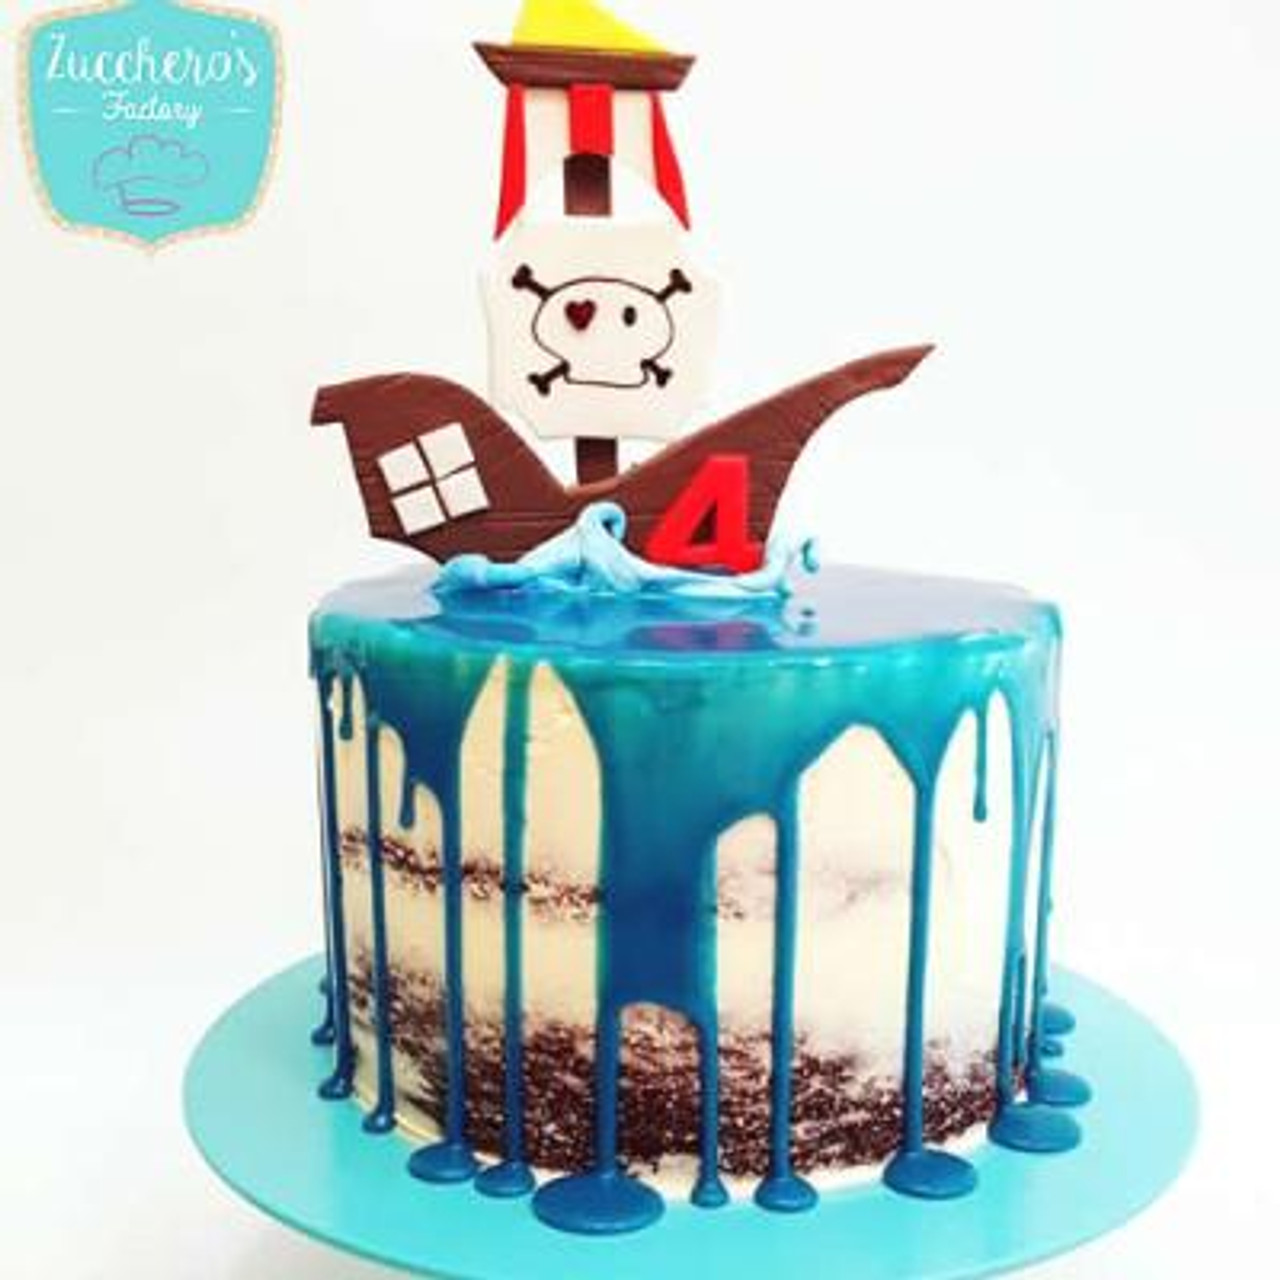 Cakes Delivery Sydney